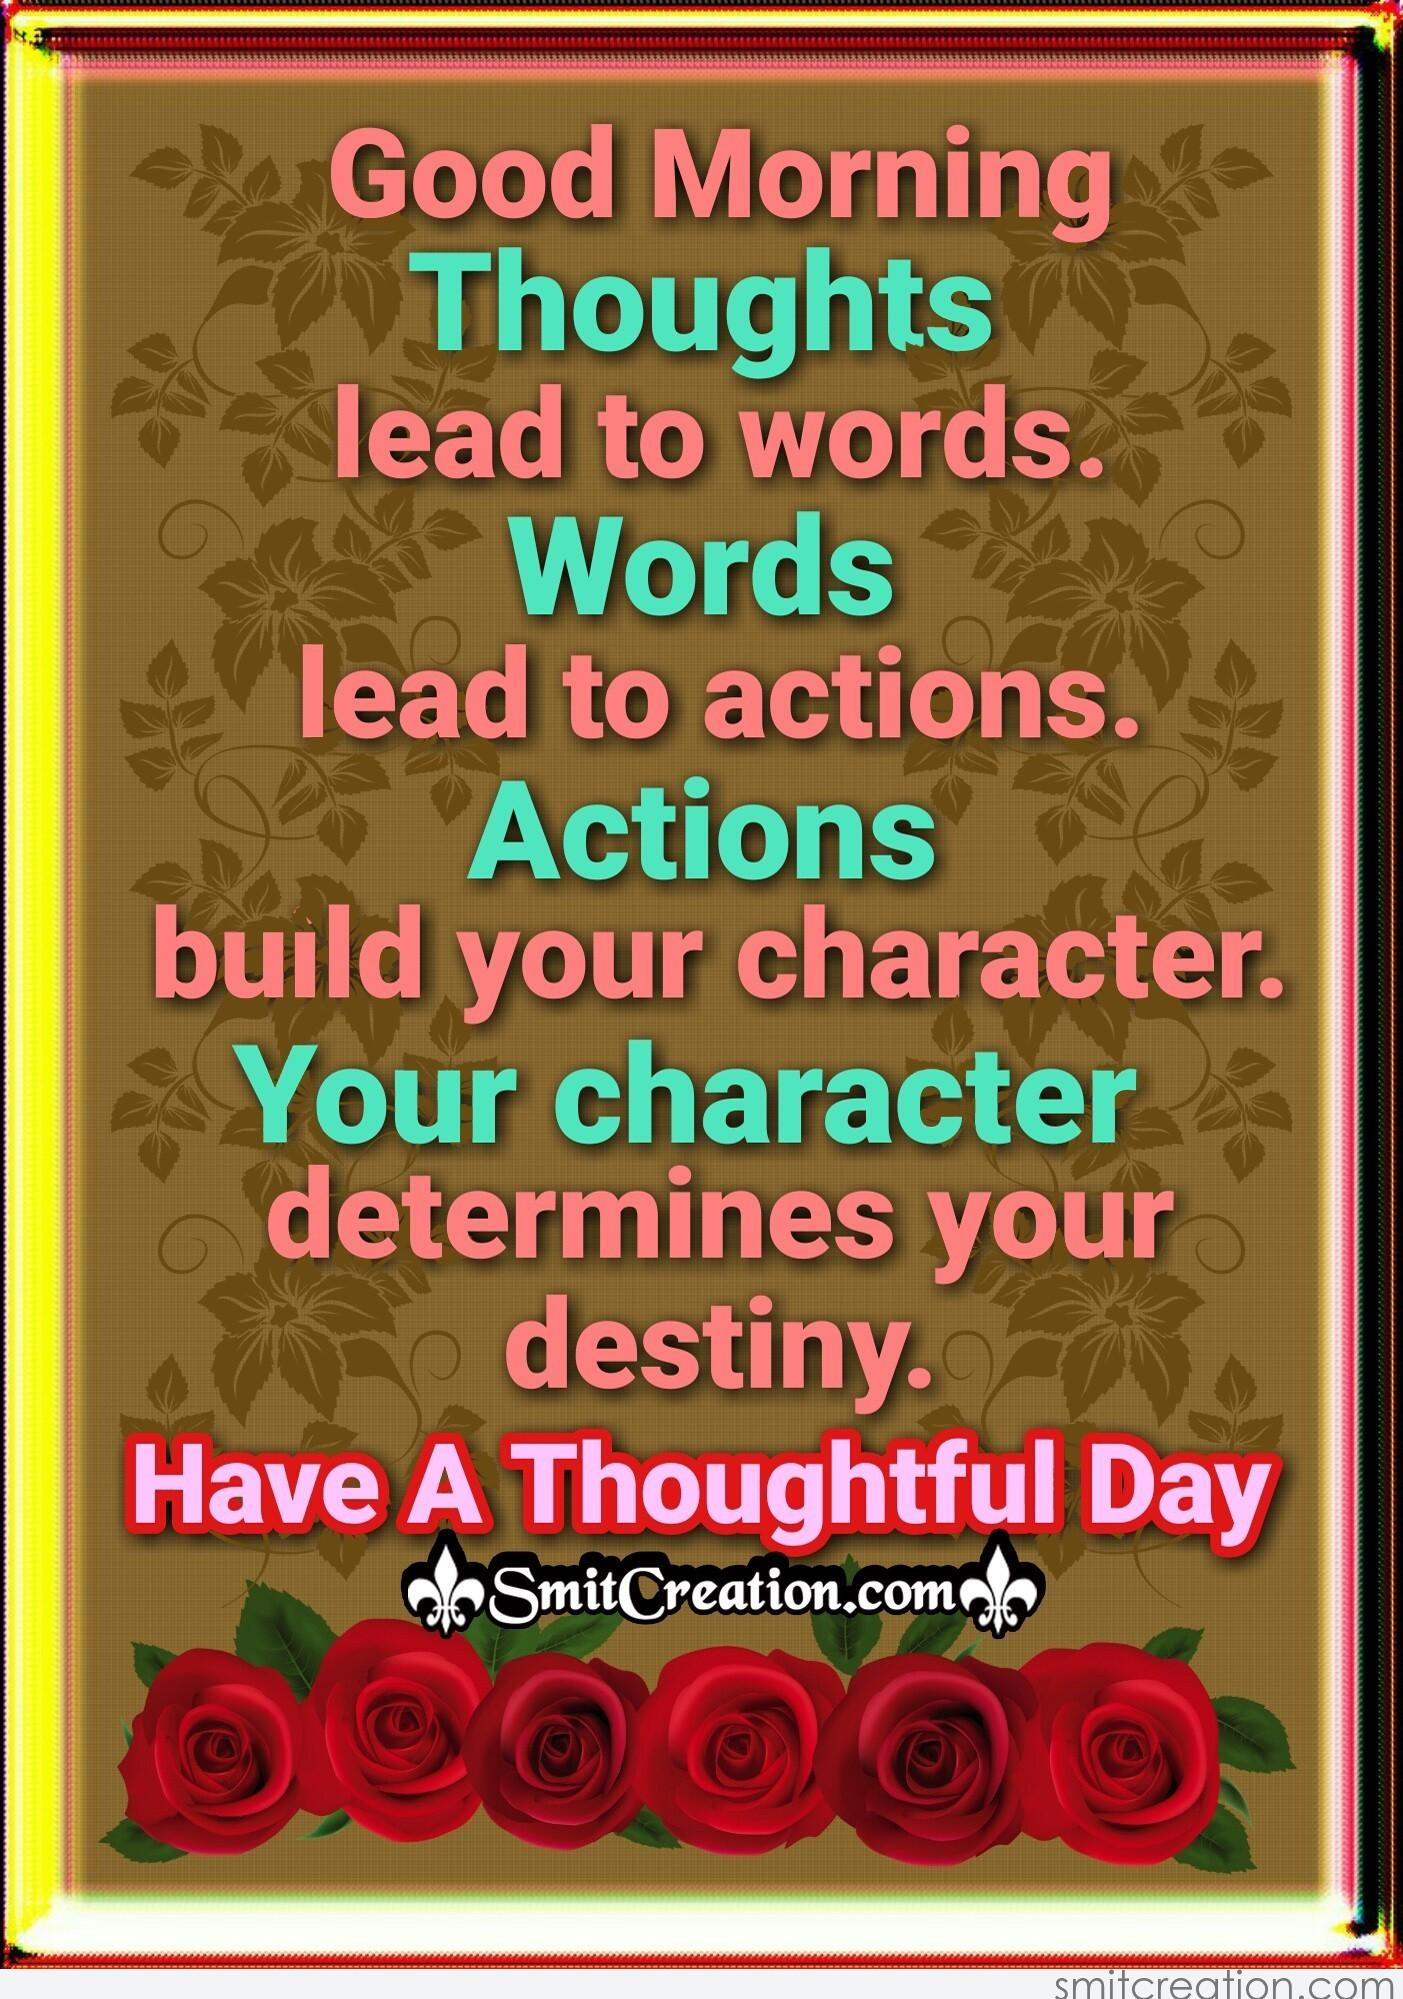 Good Morning Thoughts Lead To Words Smitcreationcom